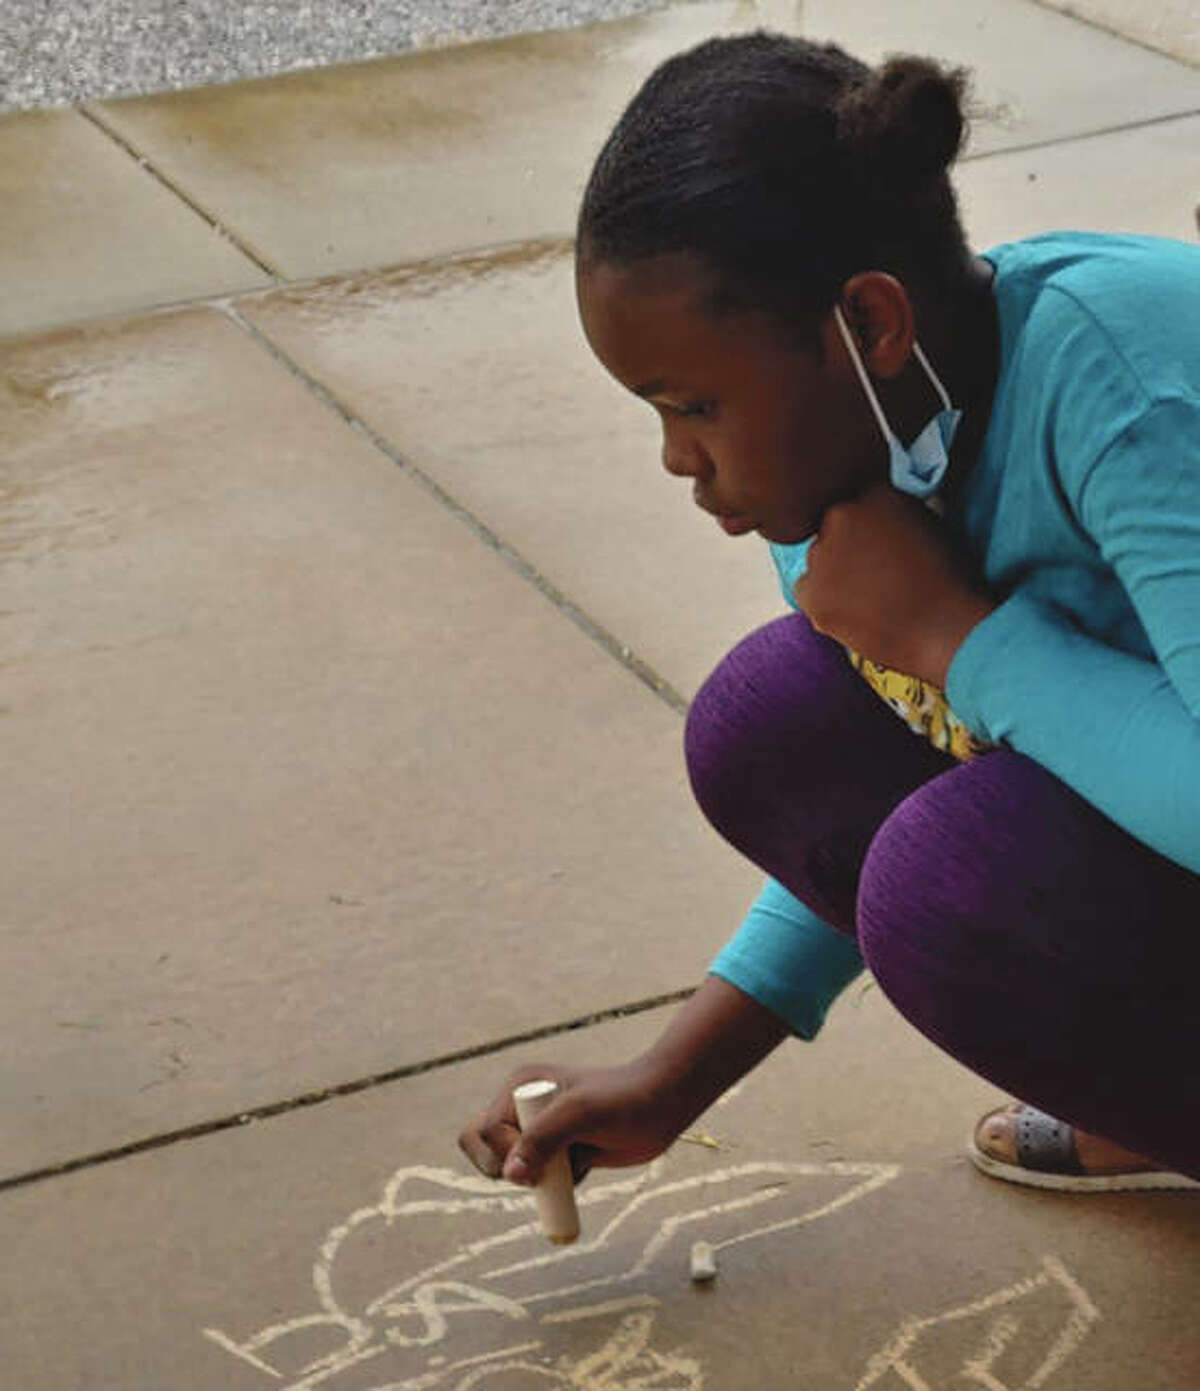 Rayne Esengo, 11, the daughter of Sandra Muke, draws with chalk Wednesday at the VAS Housing units during Midwest Youth Services' Round Table Summer Lunch program.